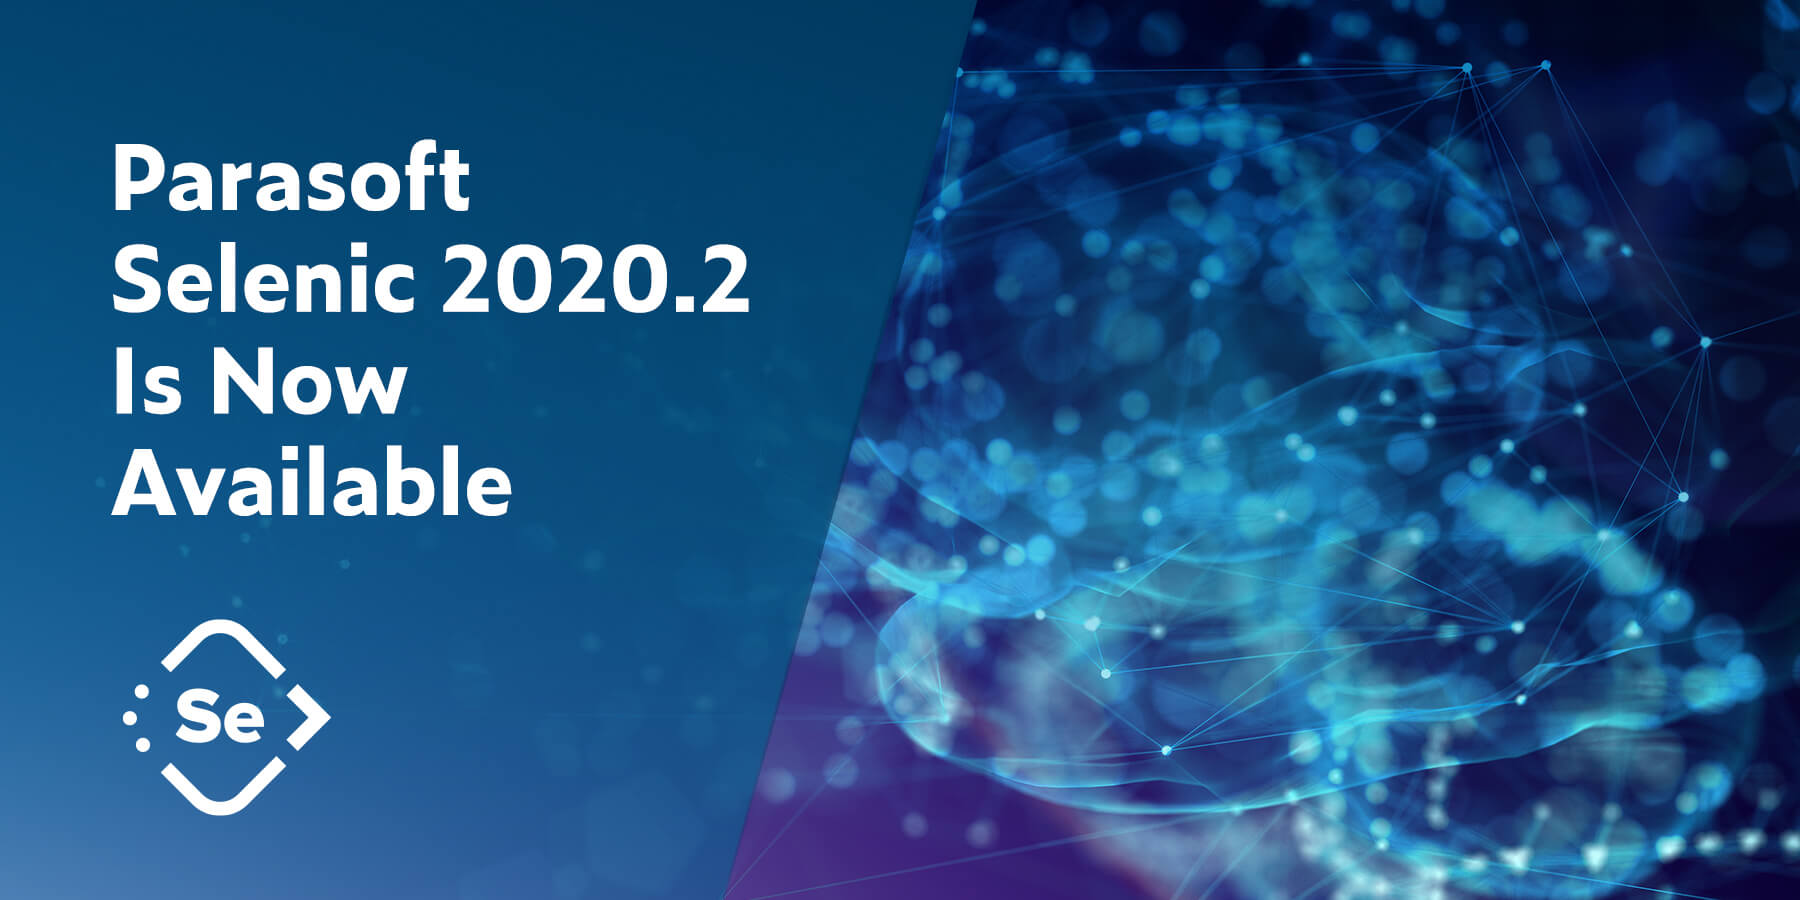 Parasoft Selenic 2020.2 Is Now Available